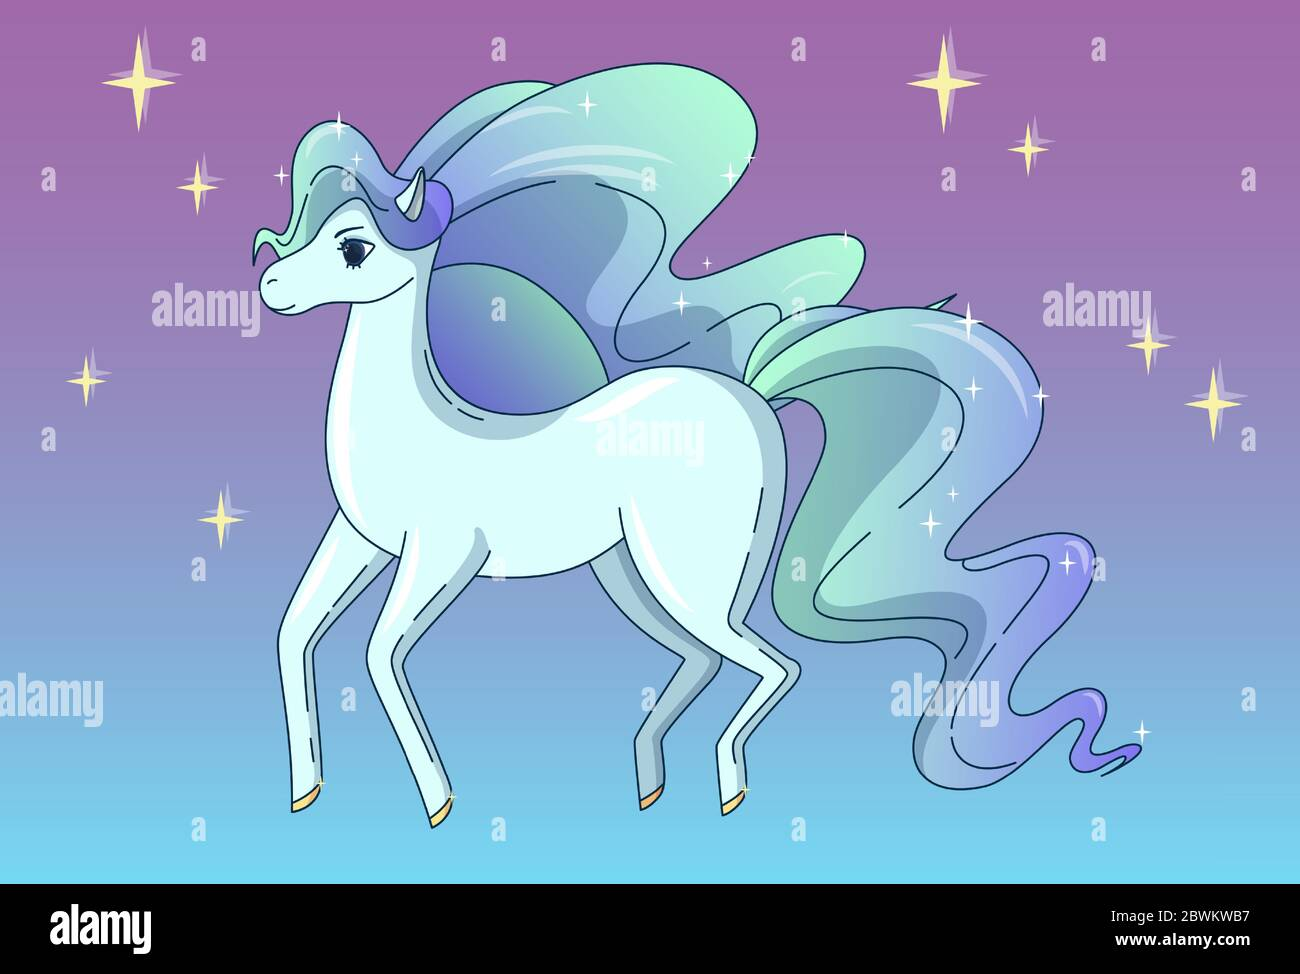 Pretty Horse With Waving Mane And Tail Shining Like A Brilliant Vector Illustration In Cute Cartoon Style Stock Vector Image Art Alamy